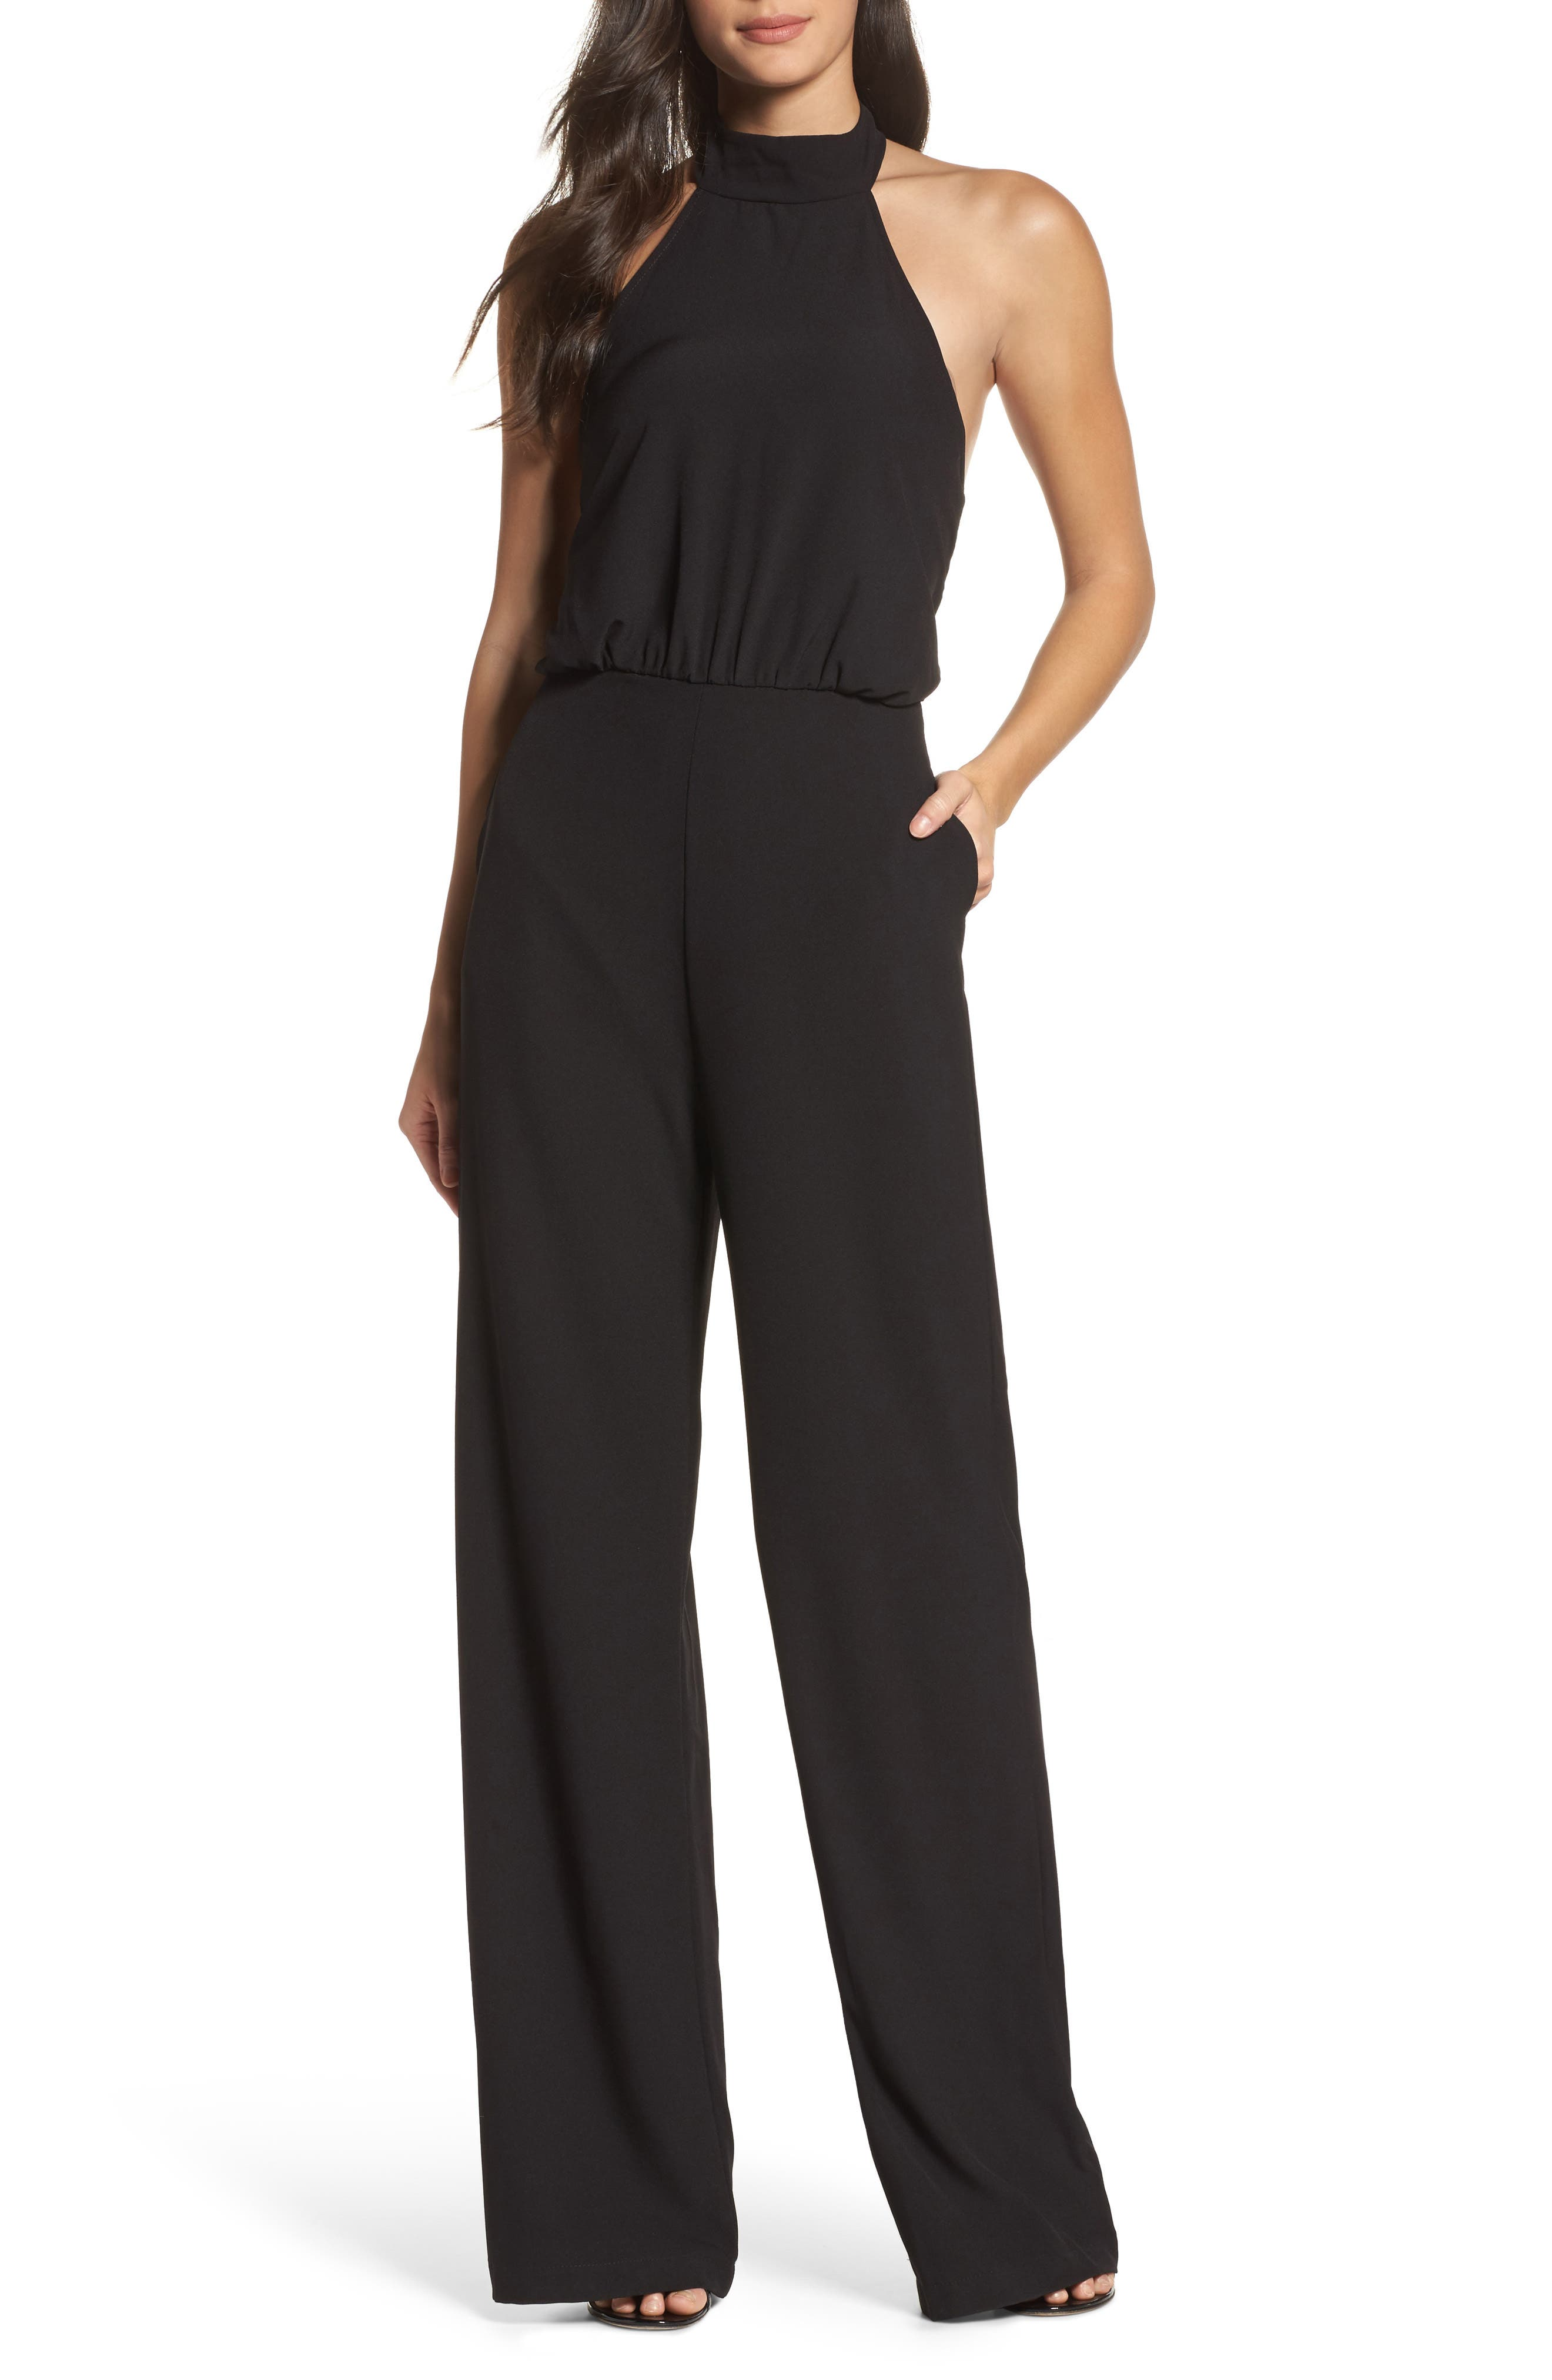 Moment for Life Halter Jumpsuit,                         Main,                         color, BLACK